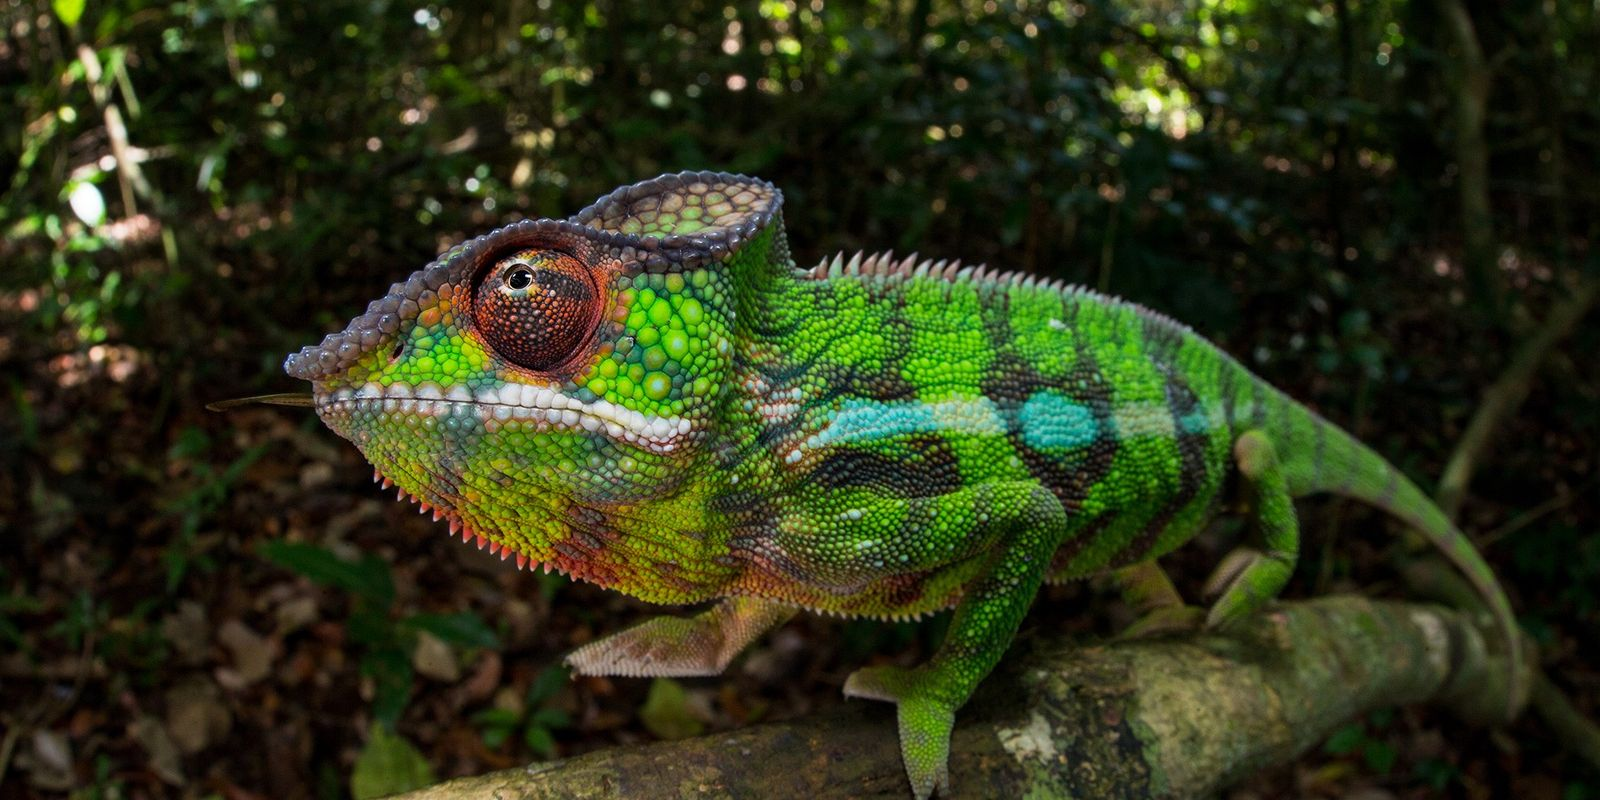 How do animals change colour?